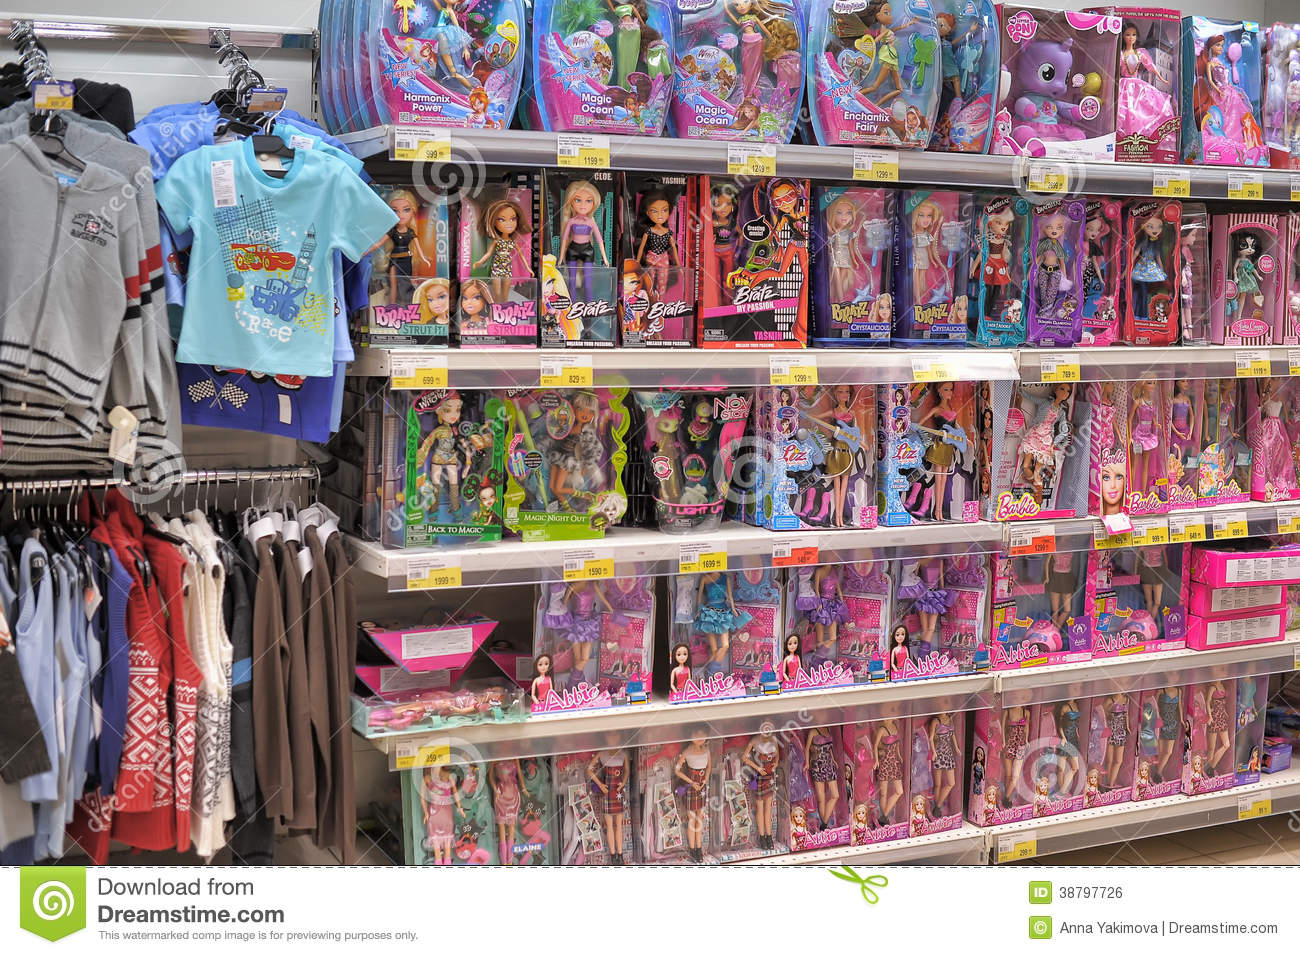 Toys R Us Küchenspielzeug Toys R Us Küchenspielzeug Toy Hunt At Toys R Us For Barbie And